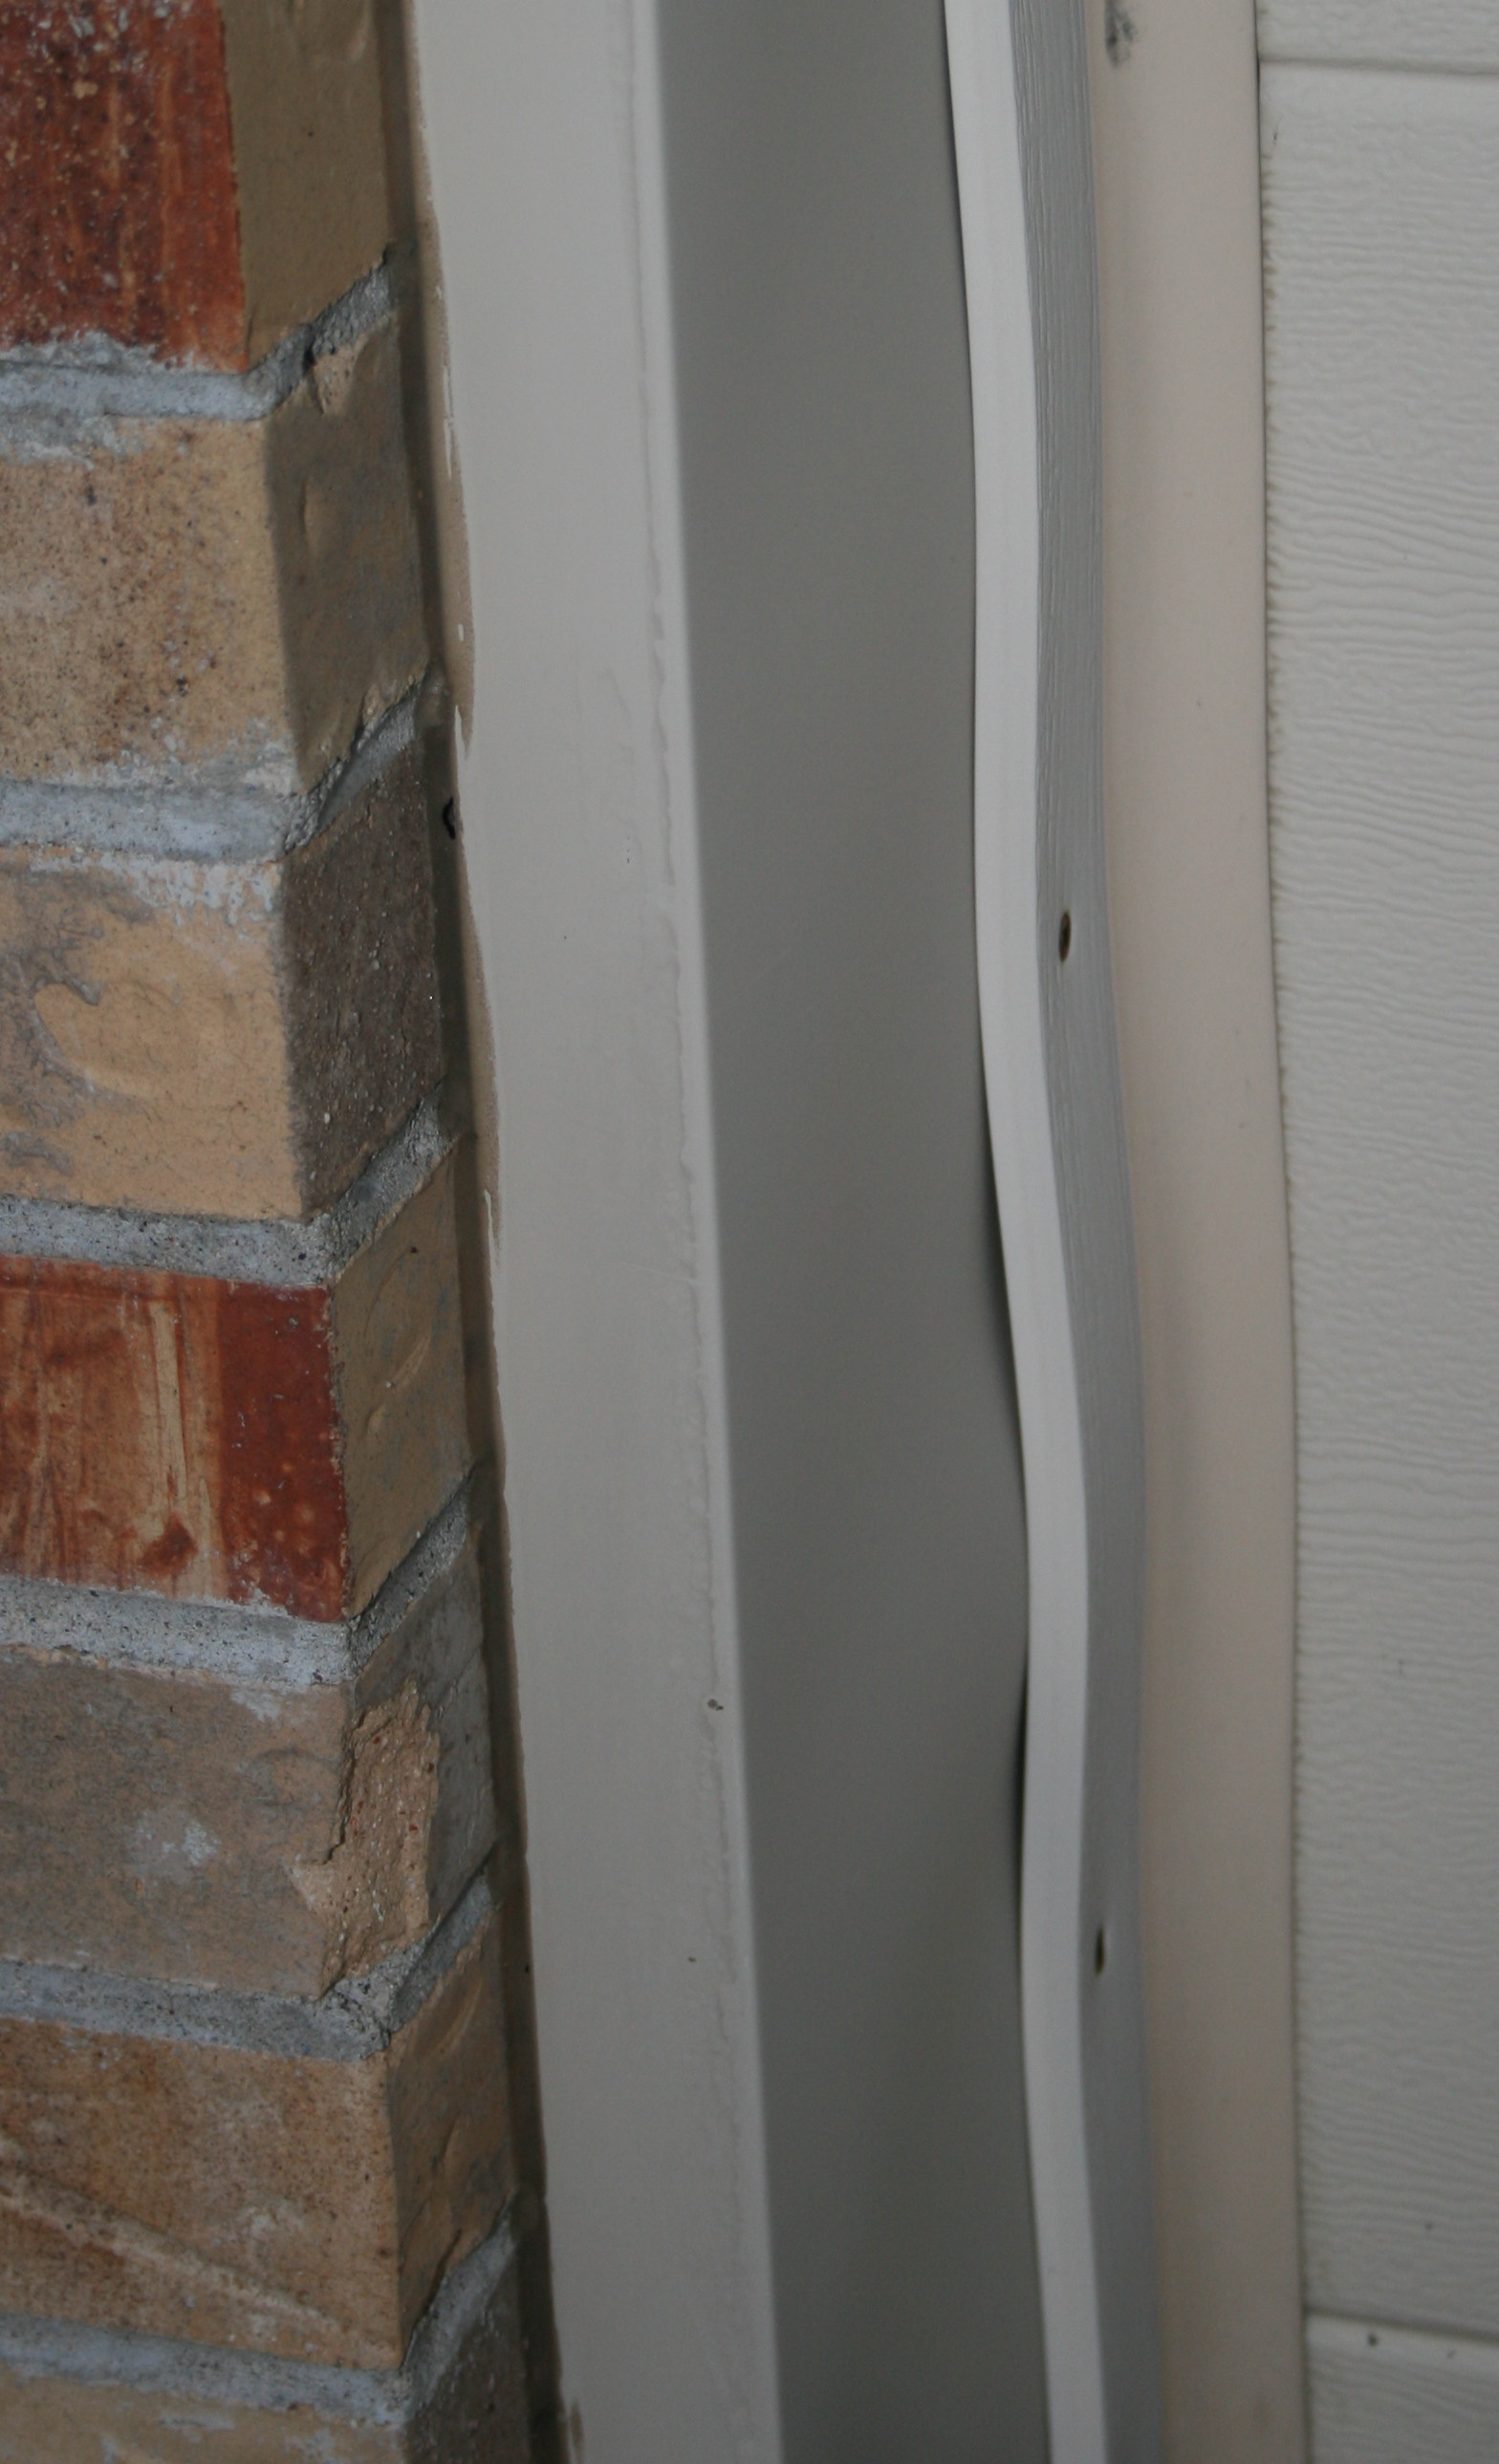 How can I repair this garage door trim and weather stripping  Home Improvement Stack Exchange